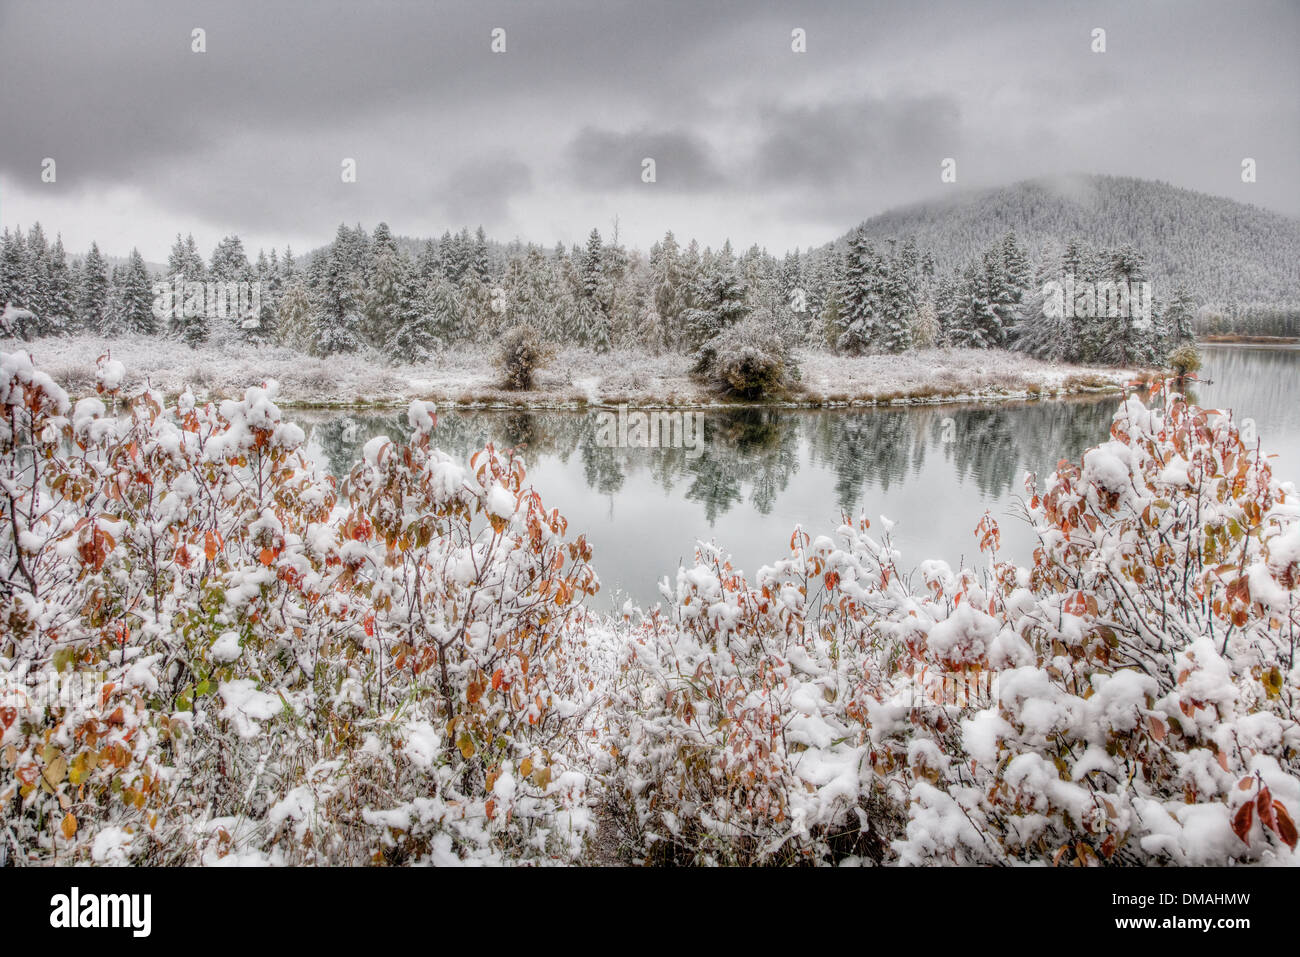 Oxbow Bend with Autumn (Fall) colour and early snow Grand Tetons National Park Wyoming. USA LA006565 - Stock Image